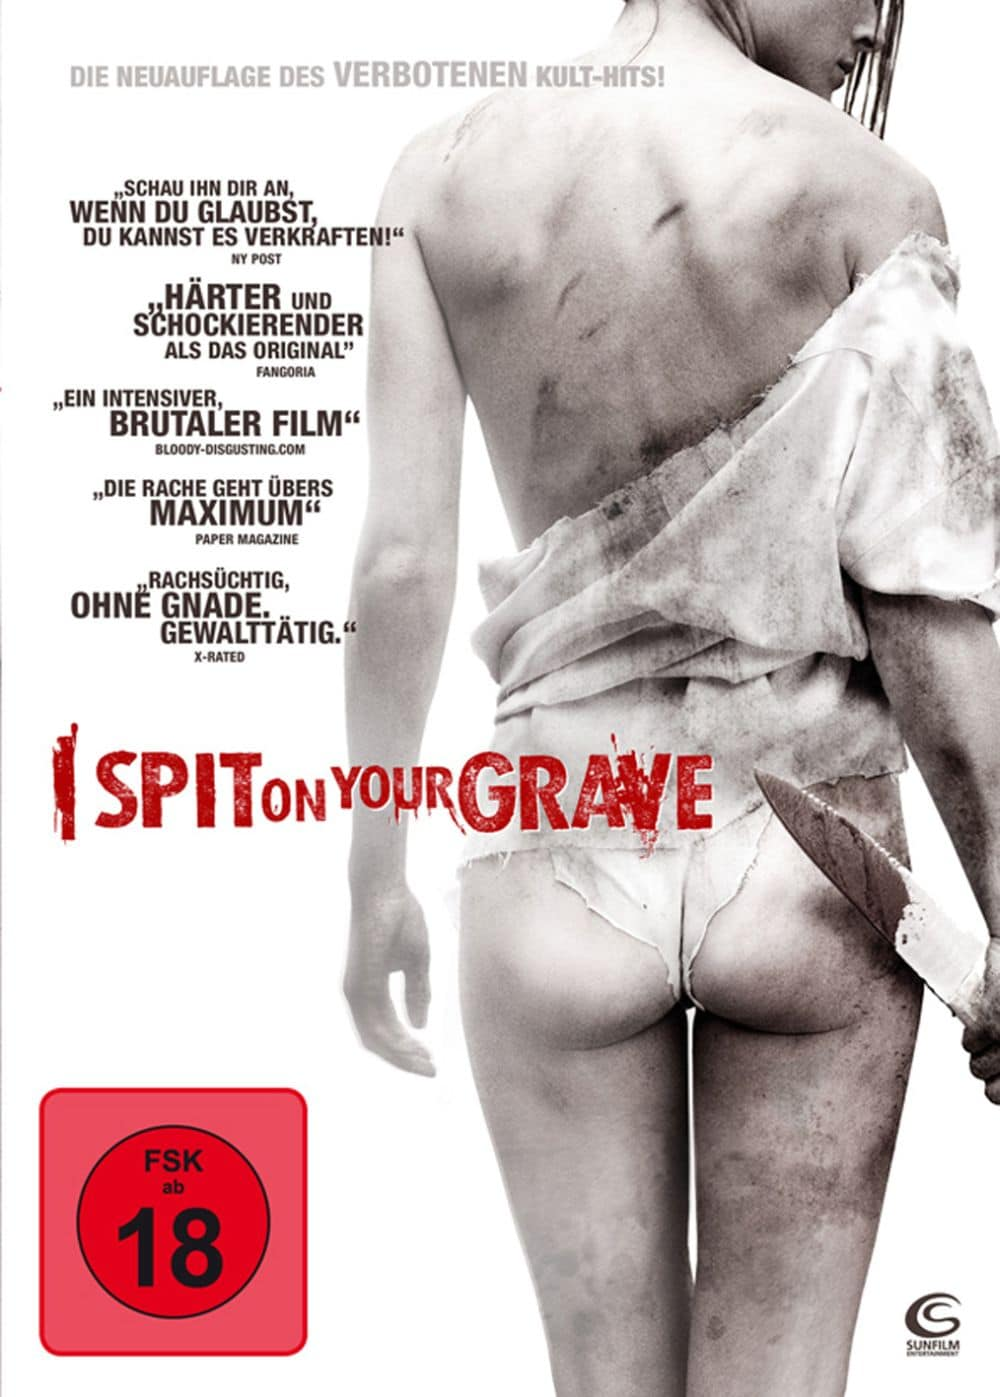 I Spit On Your Grave - Film 2010 - Scary-Movies.de